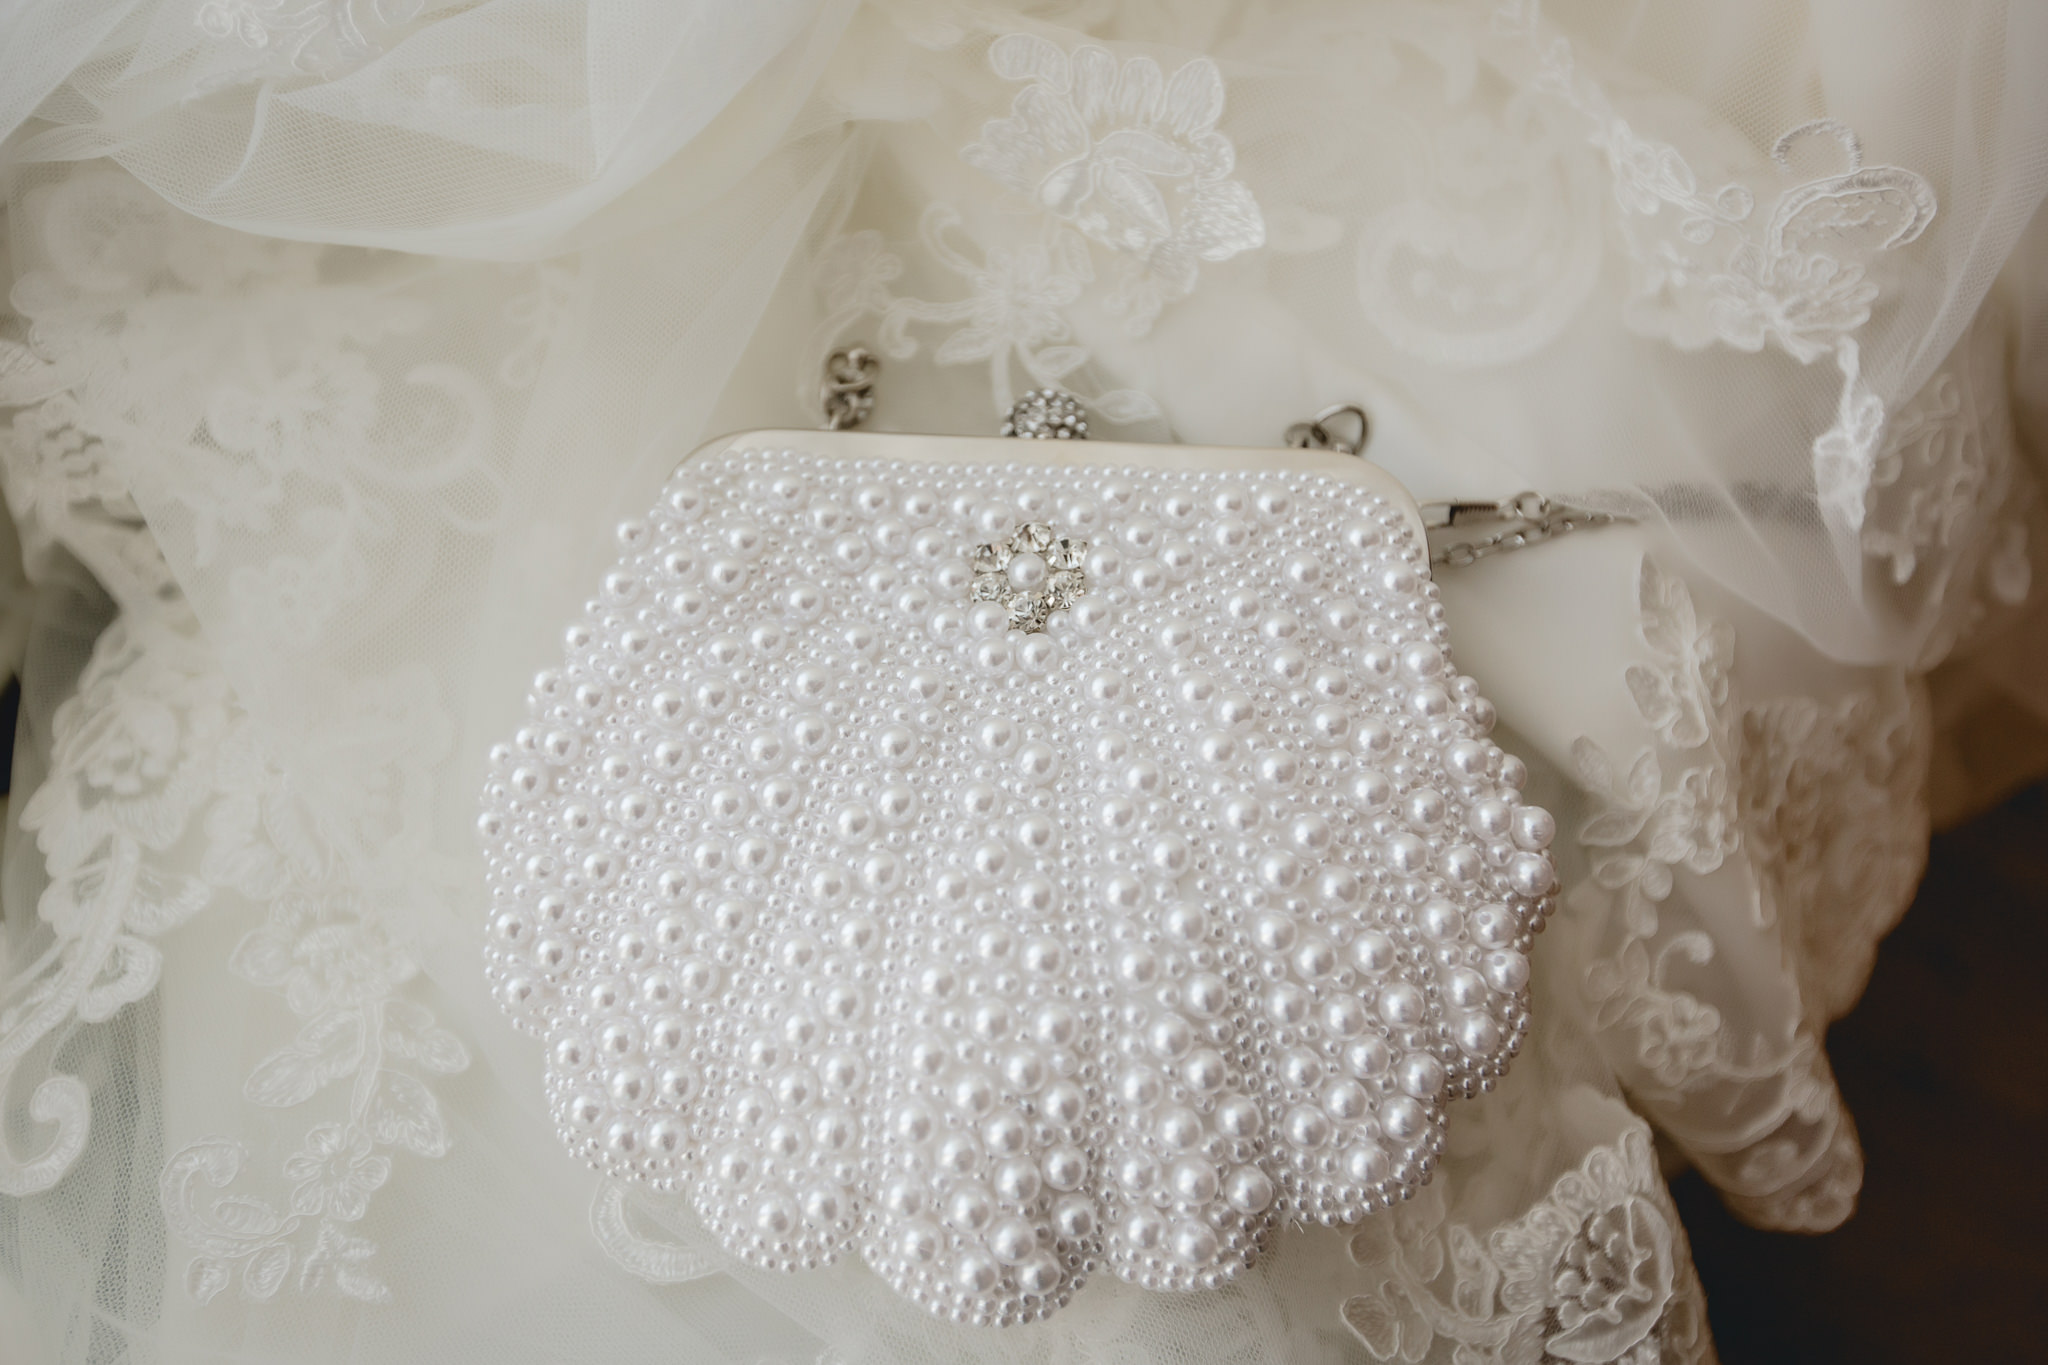 Brides white pearl purse sitting on her wedding dress train